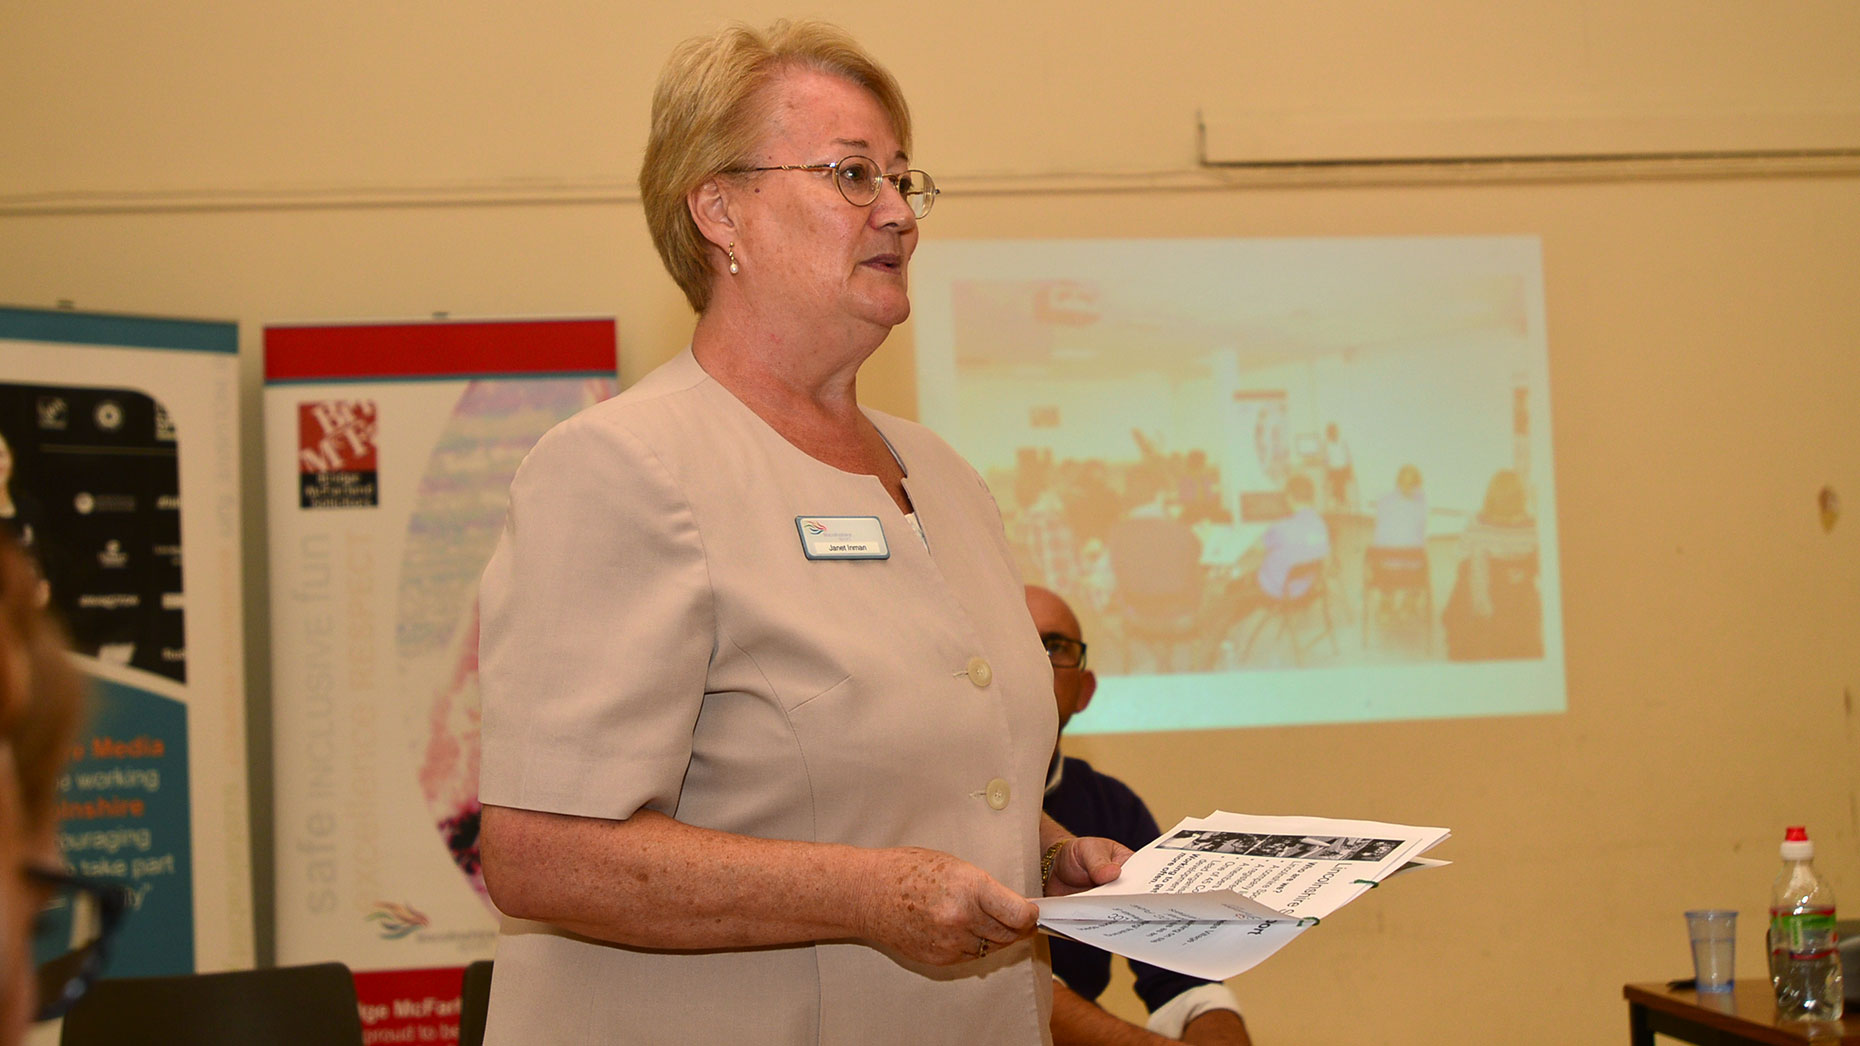 Lincolnshire Sport CEO Janet Inman presenting the initial plans in July 2014. Photo: Steve Smailes for The Lincolnite